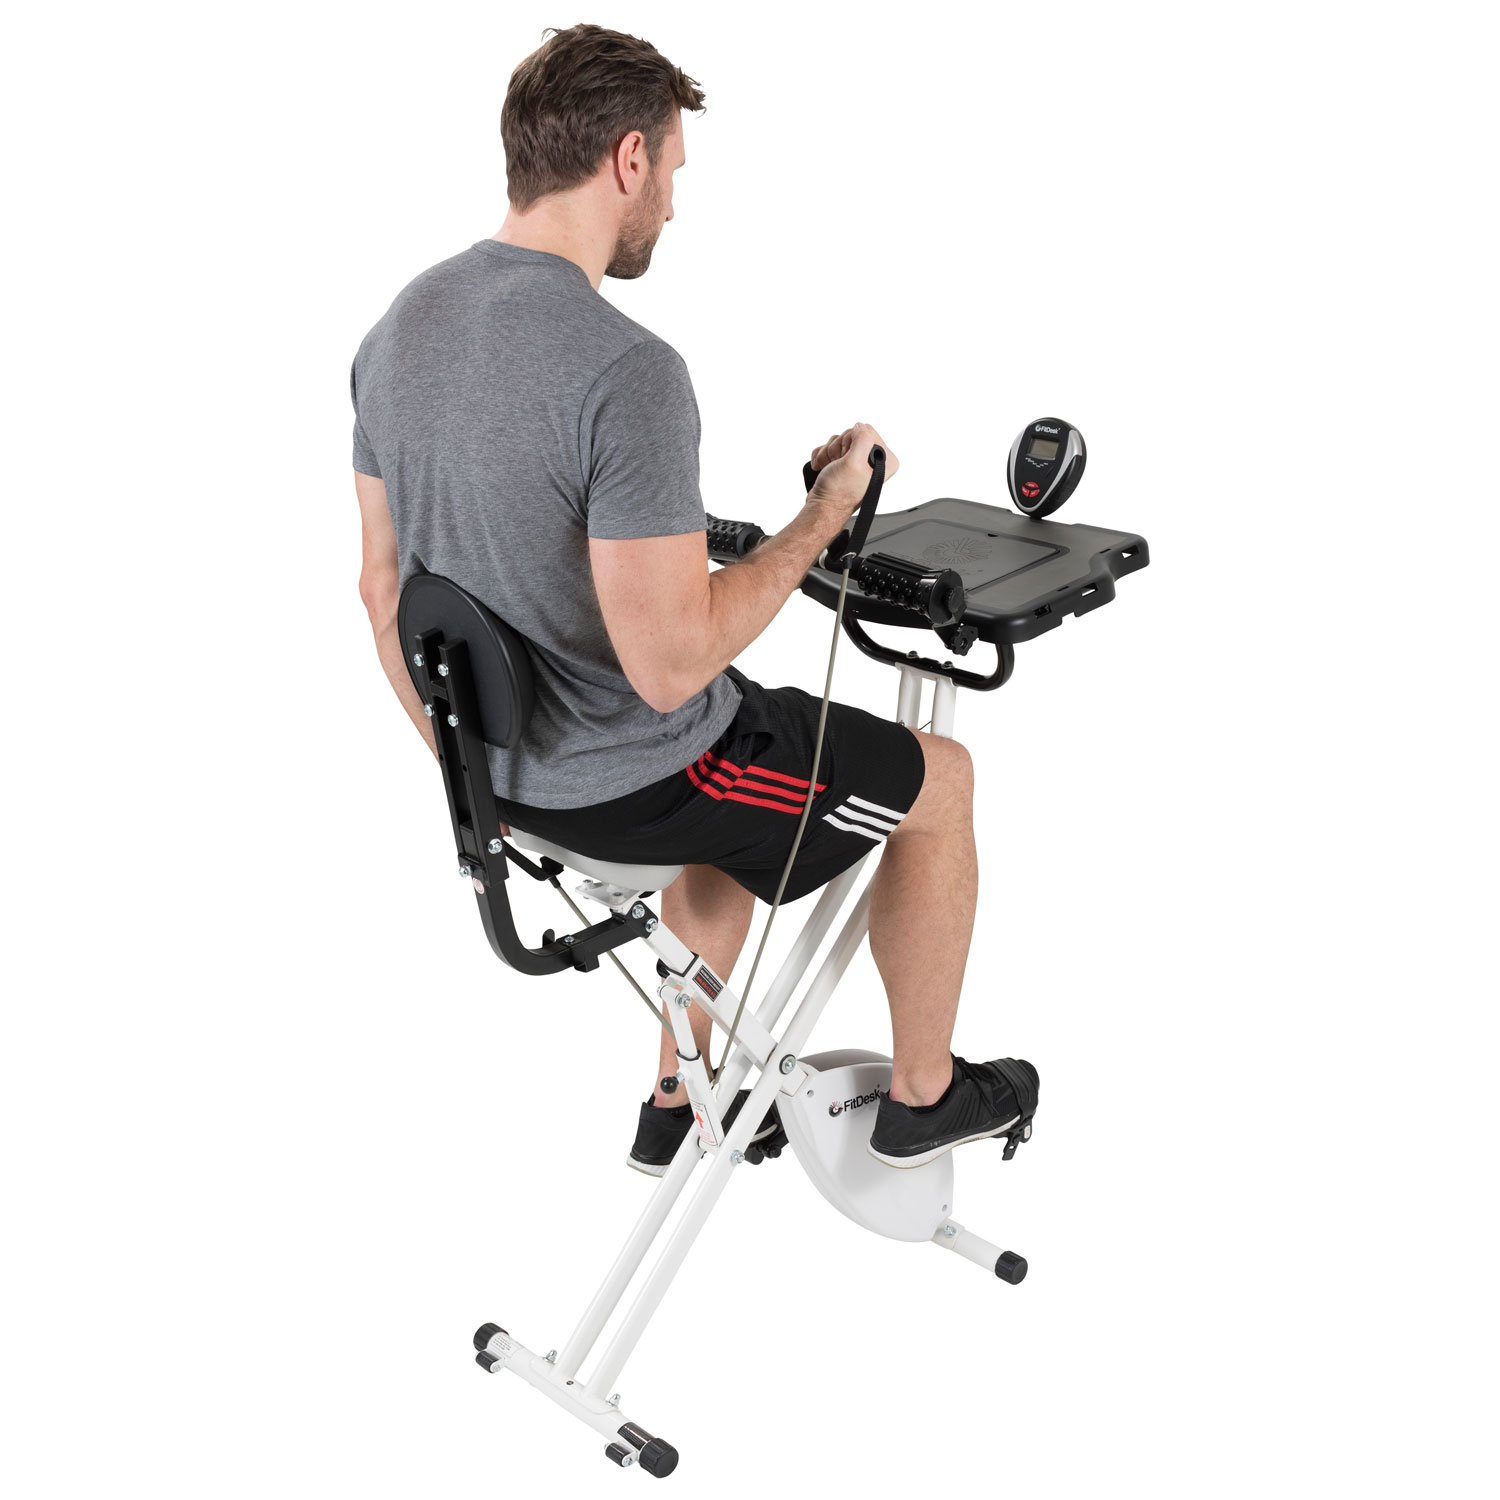 FitDesk 3 0 Exercise Desk Bike Exercise Bikes Best Buy Canada